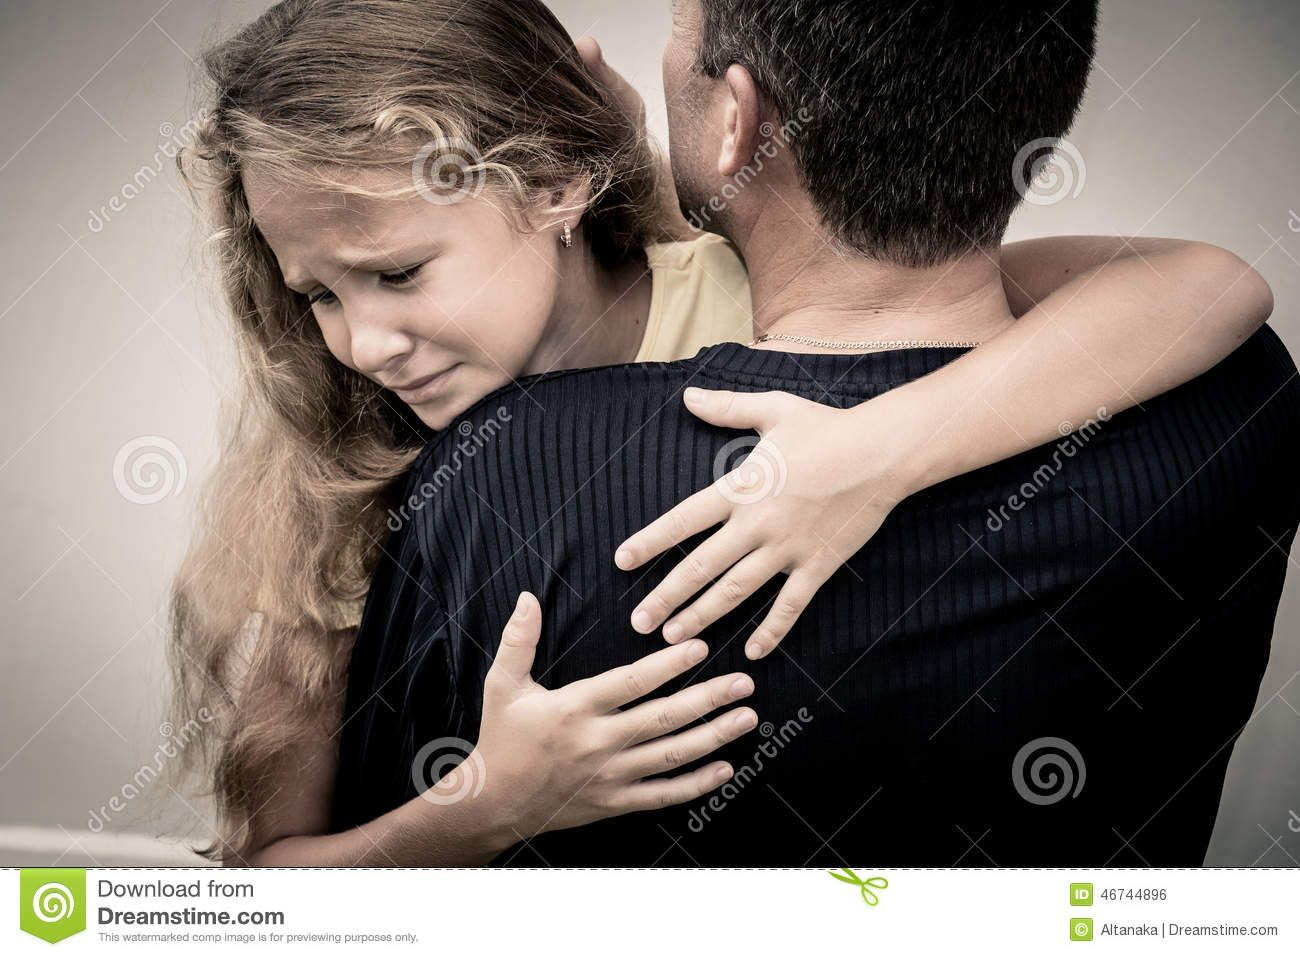 portrait-one-sad-daughter-hugging-his-father-day-time-46744896.jpg (1300×957)